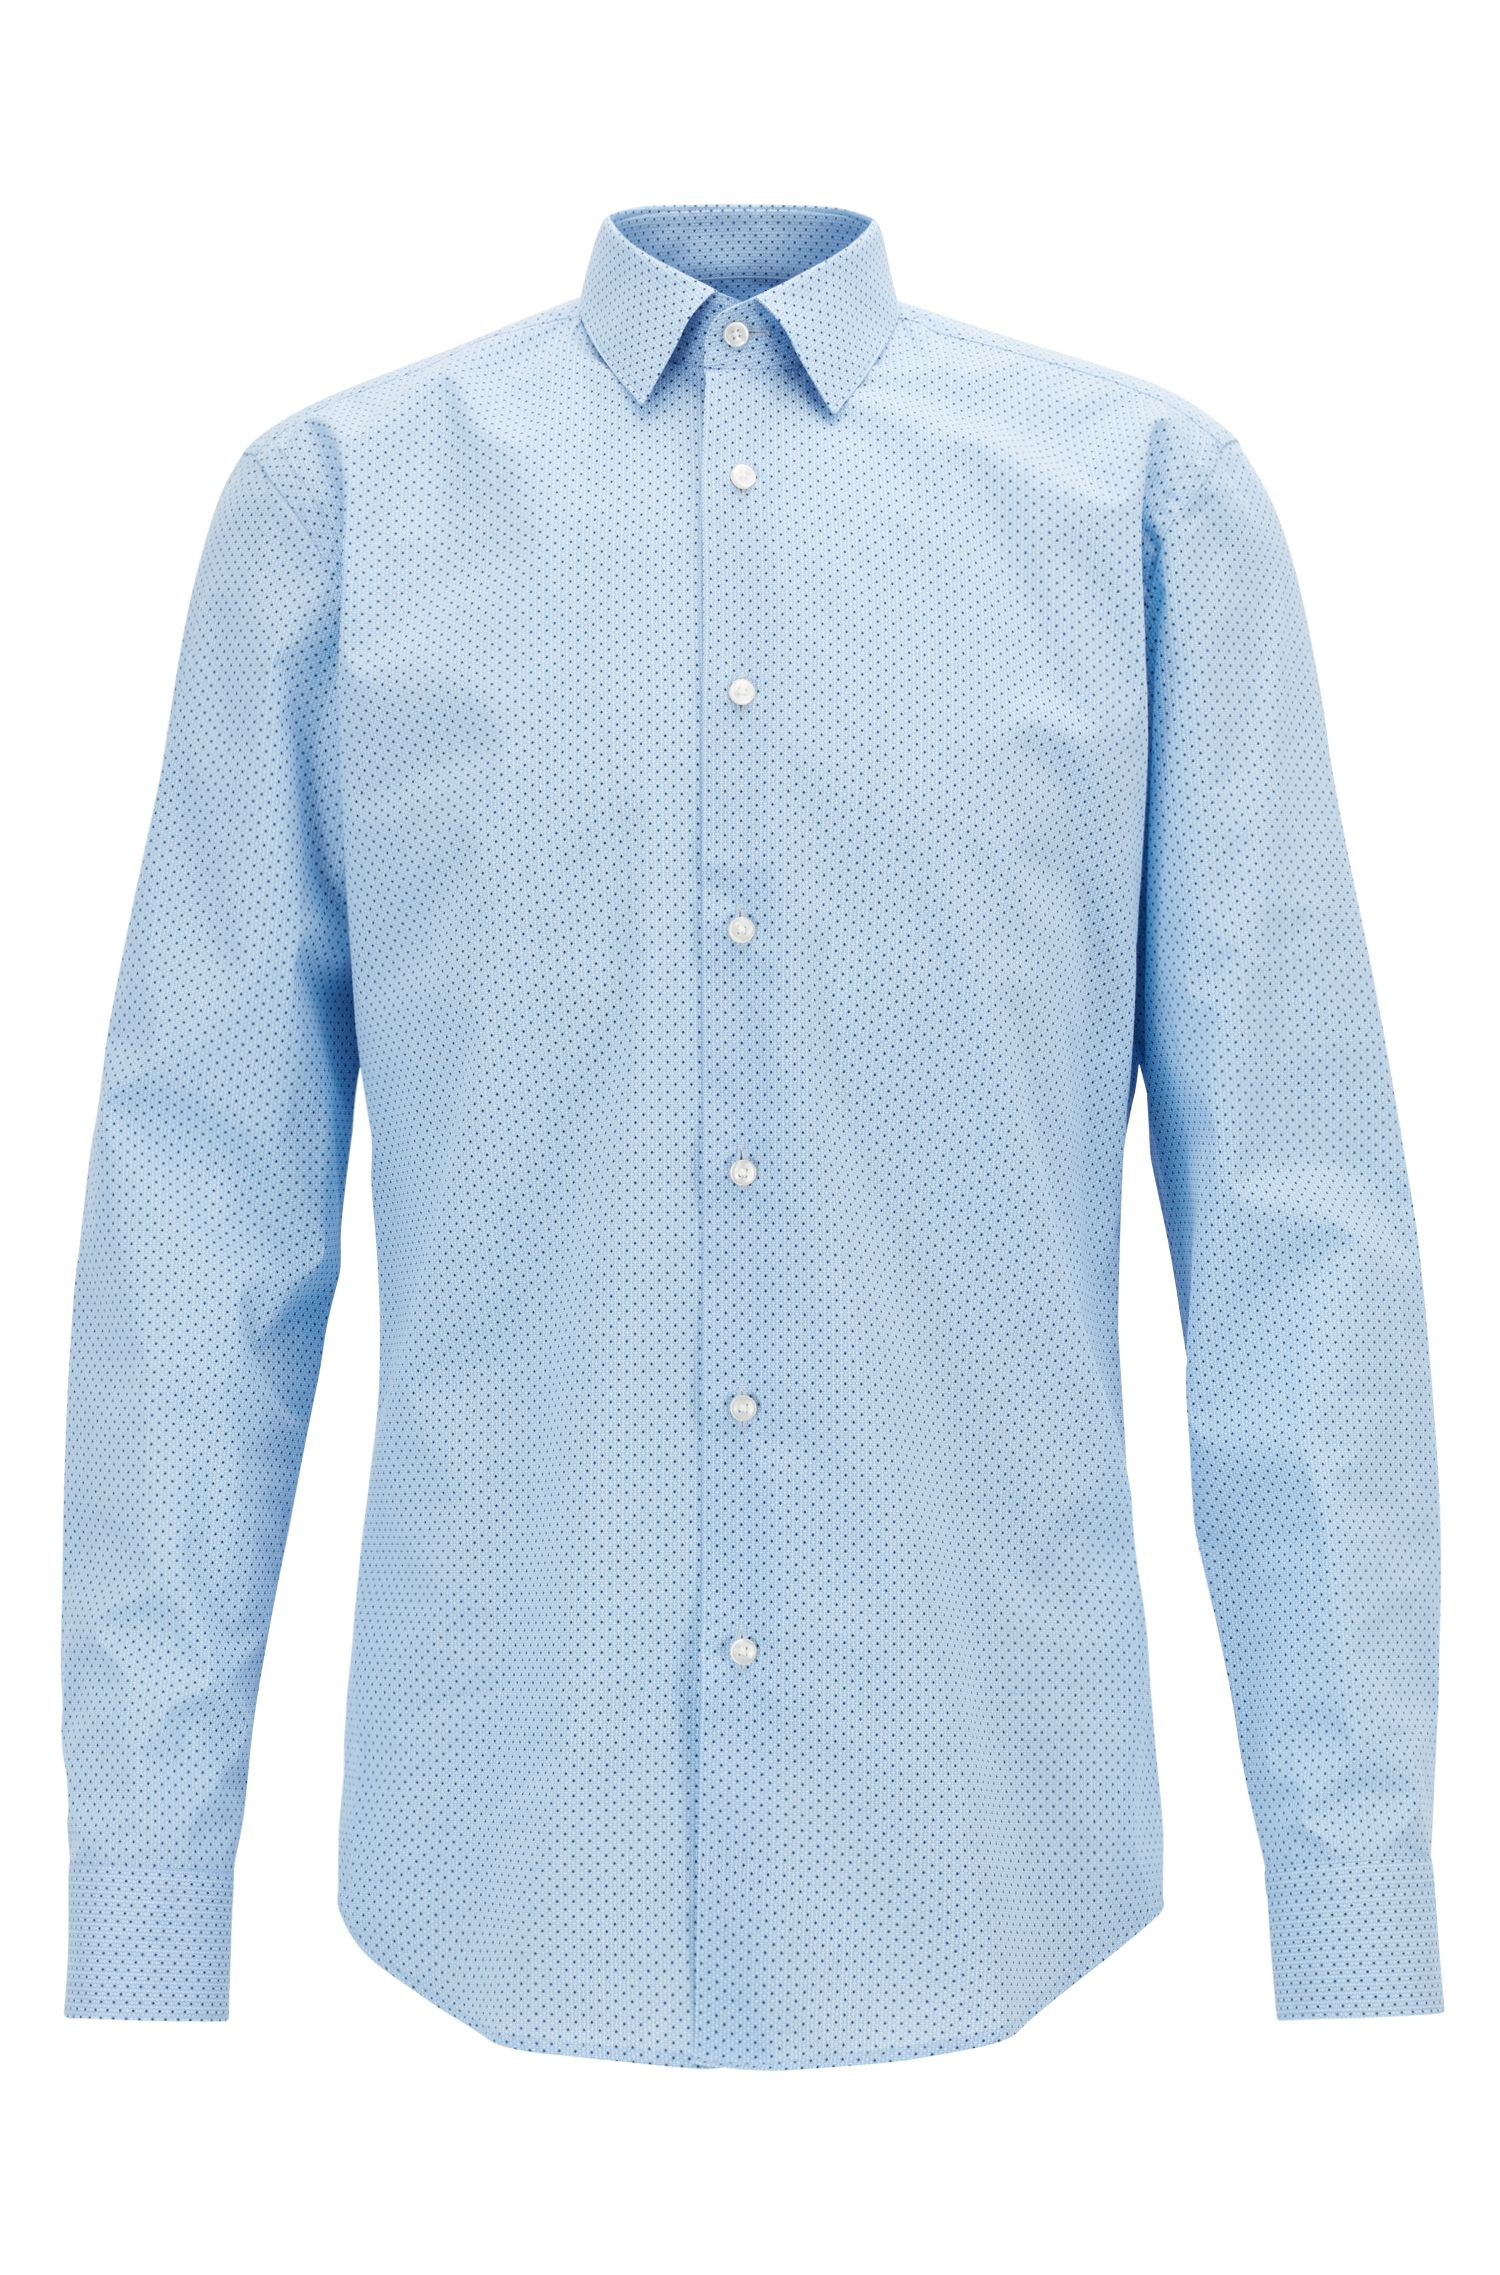 Slim-fit shirt in patterned Italian cotton, Light Blue